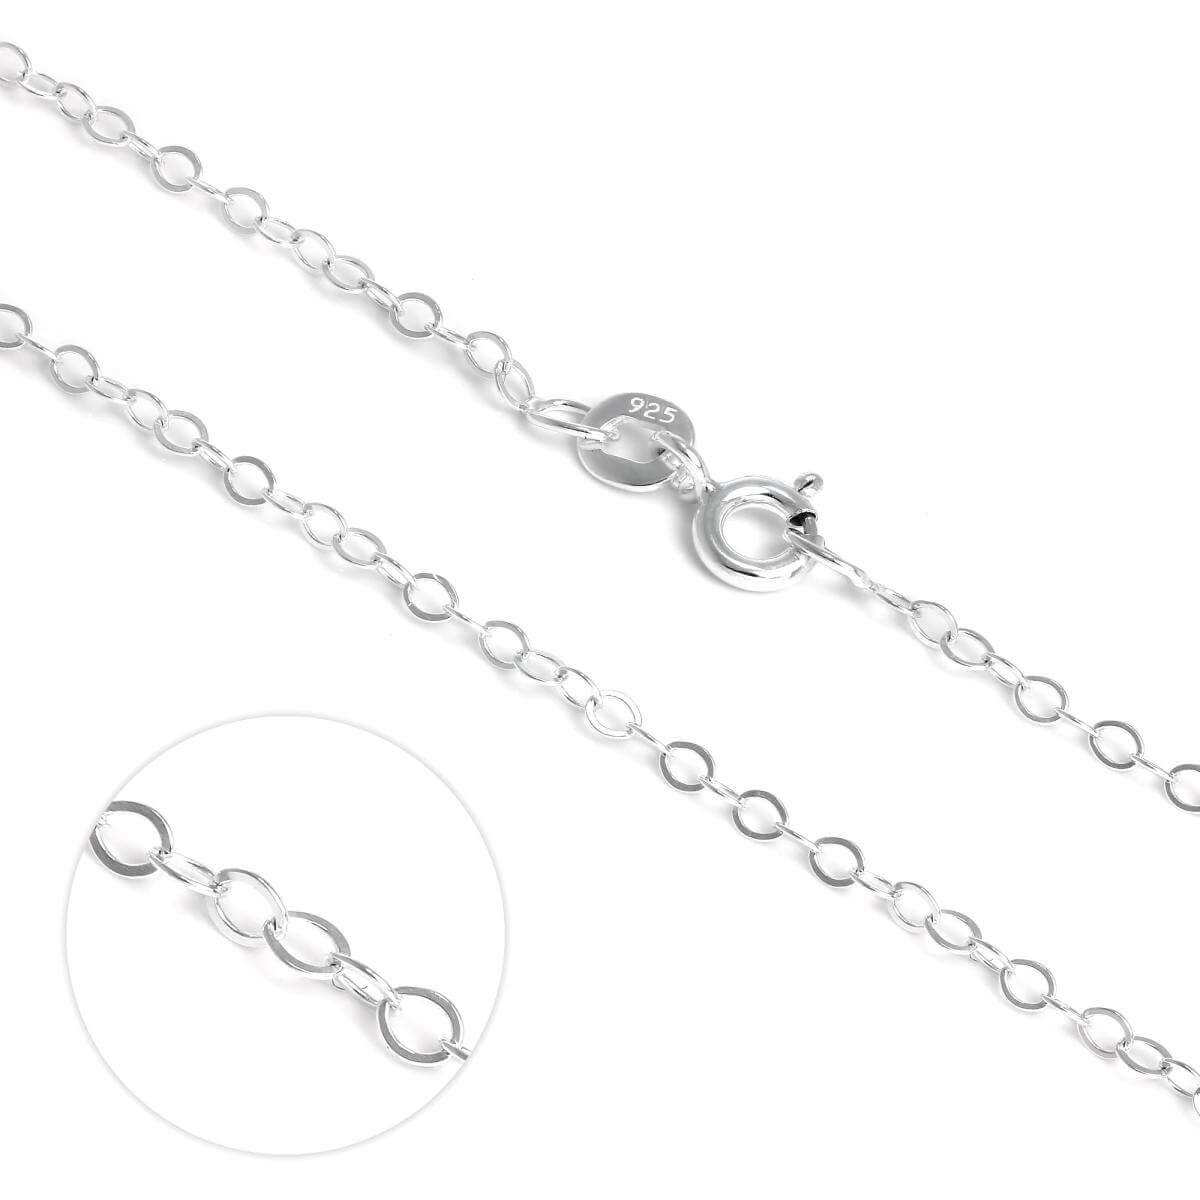 Light Sterling Silver Flat Cable Chain Necklace 16